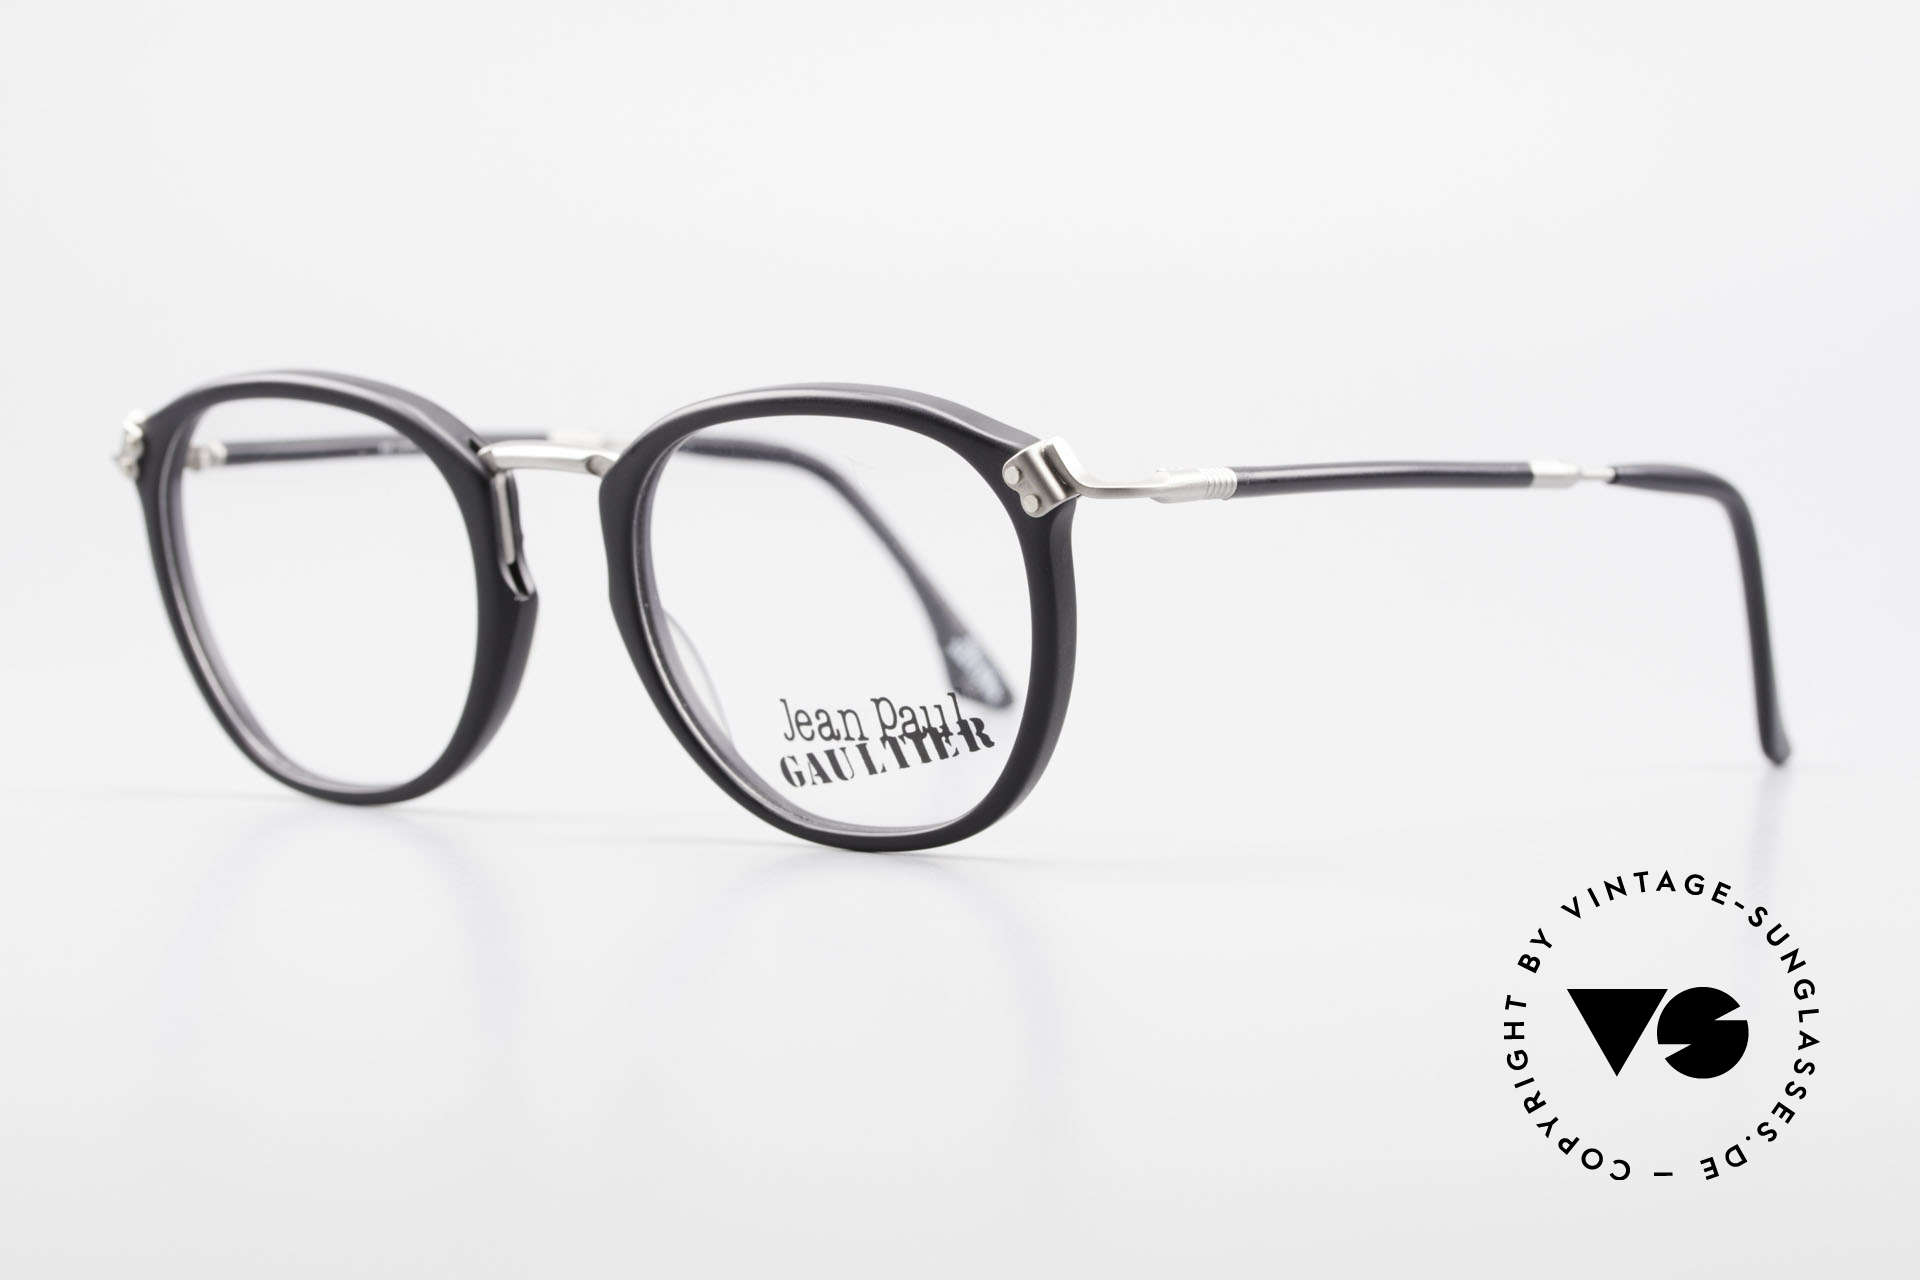 Jean Paul Gaultier 55-1272 Old Vintage Glasses No Retro, all frame parts are well riveted or screwed; top-notch, Made for Men and Women